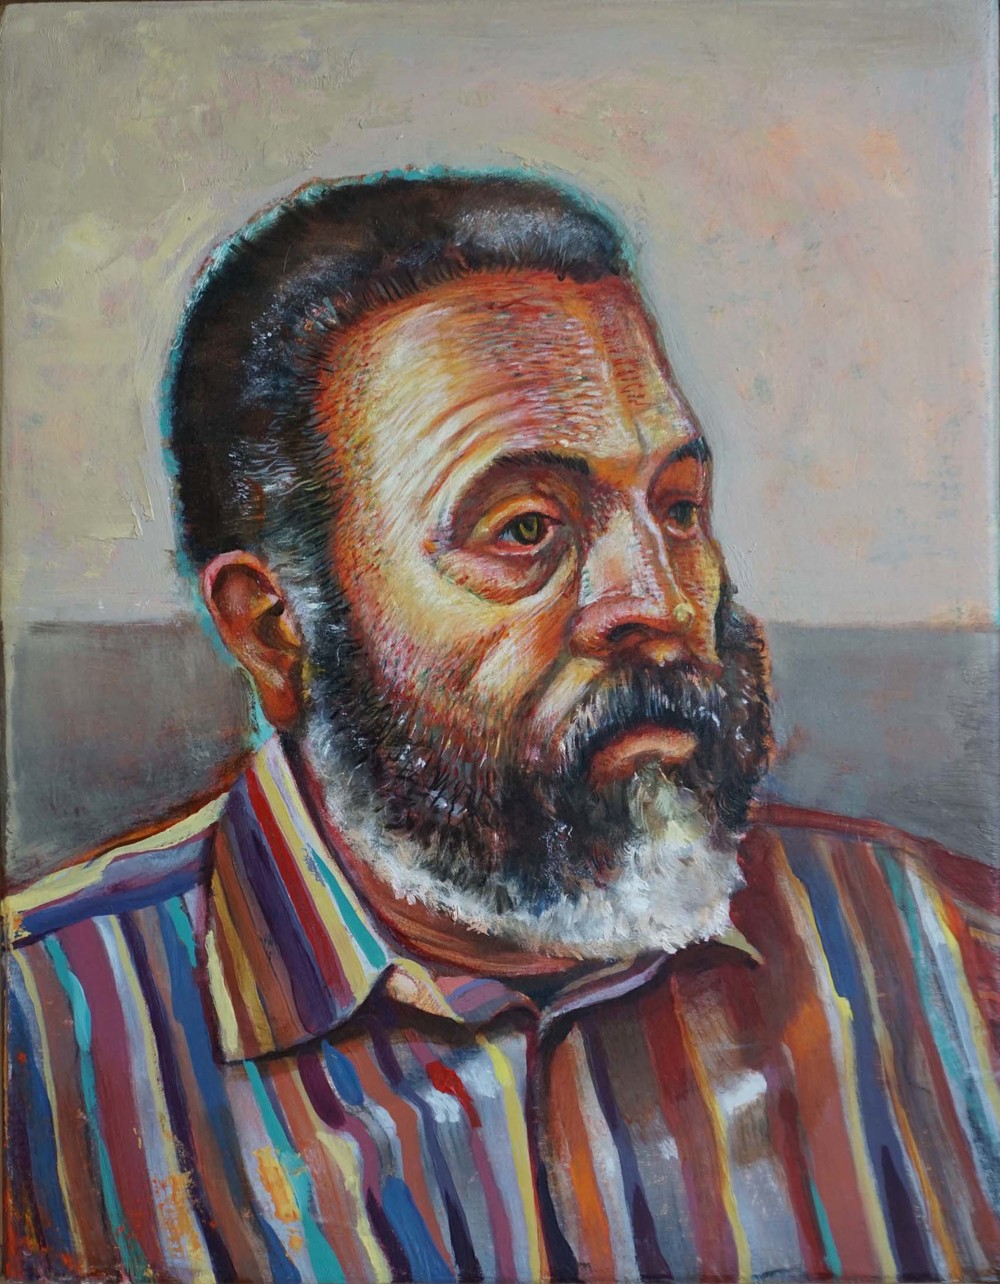 Portrait of Luis, Oil mix media, 2013